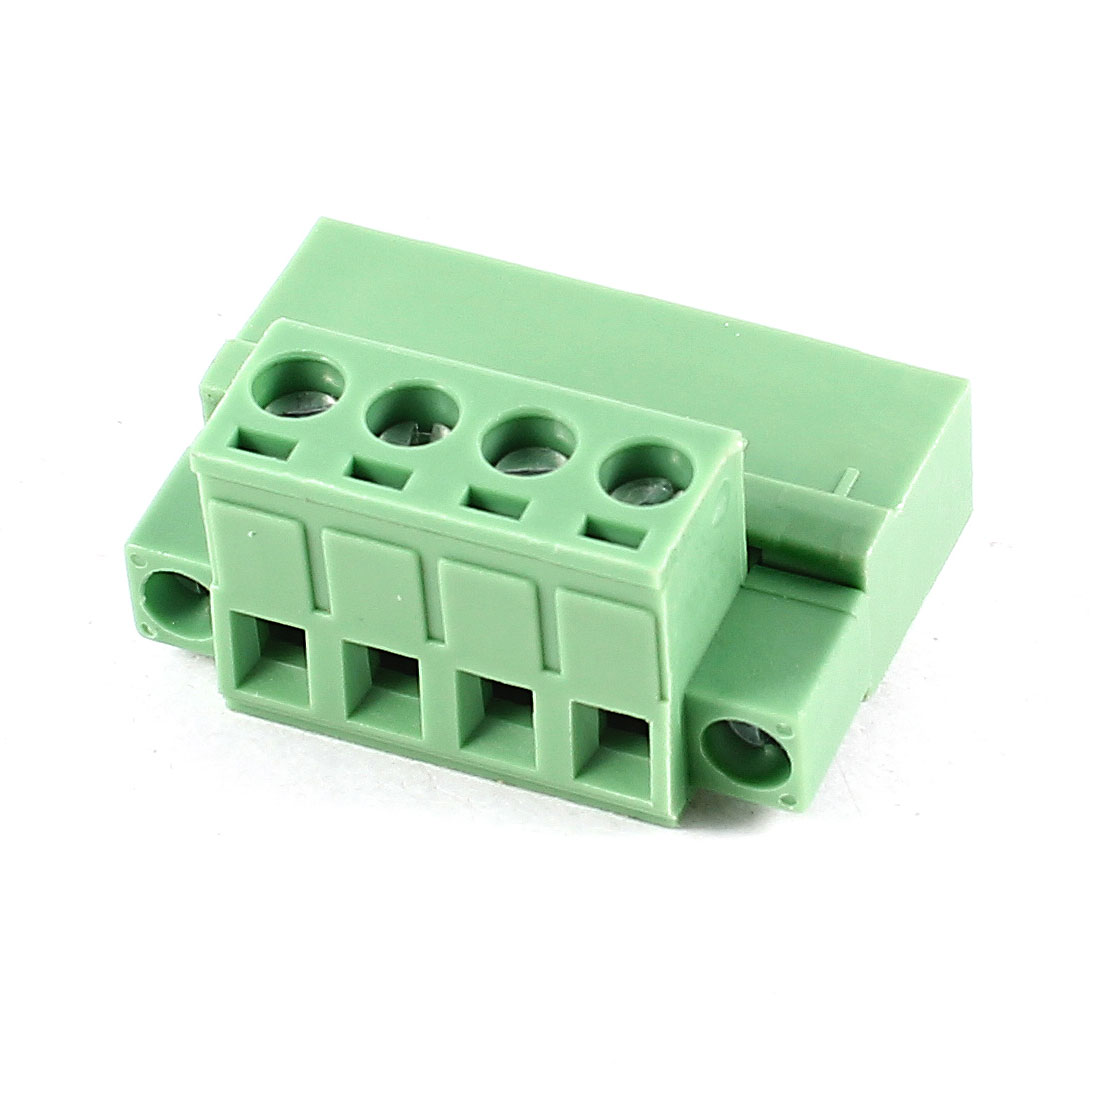 Green 4Pin 5.08mm Spacing PCB Screw Terminal Block Connector 300V 10A AWG24-12